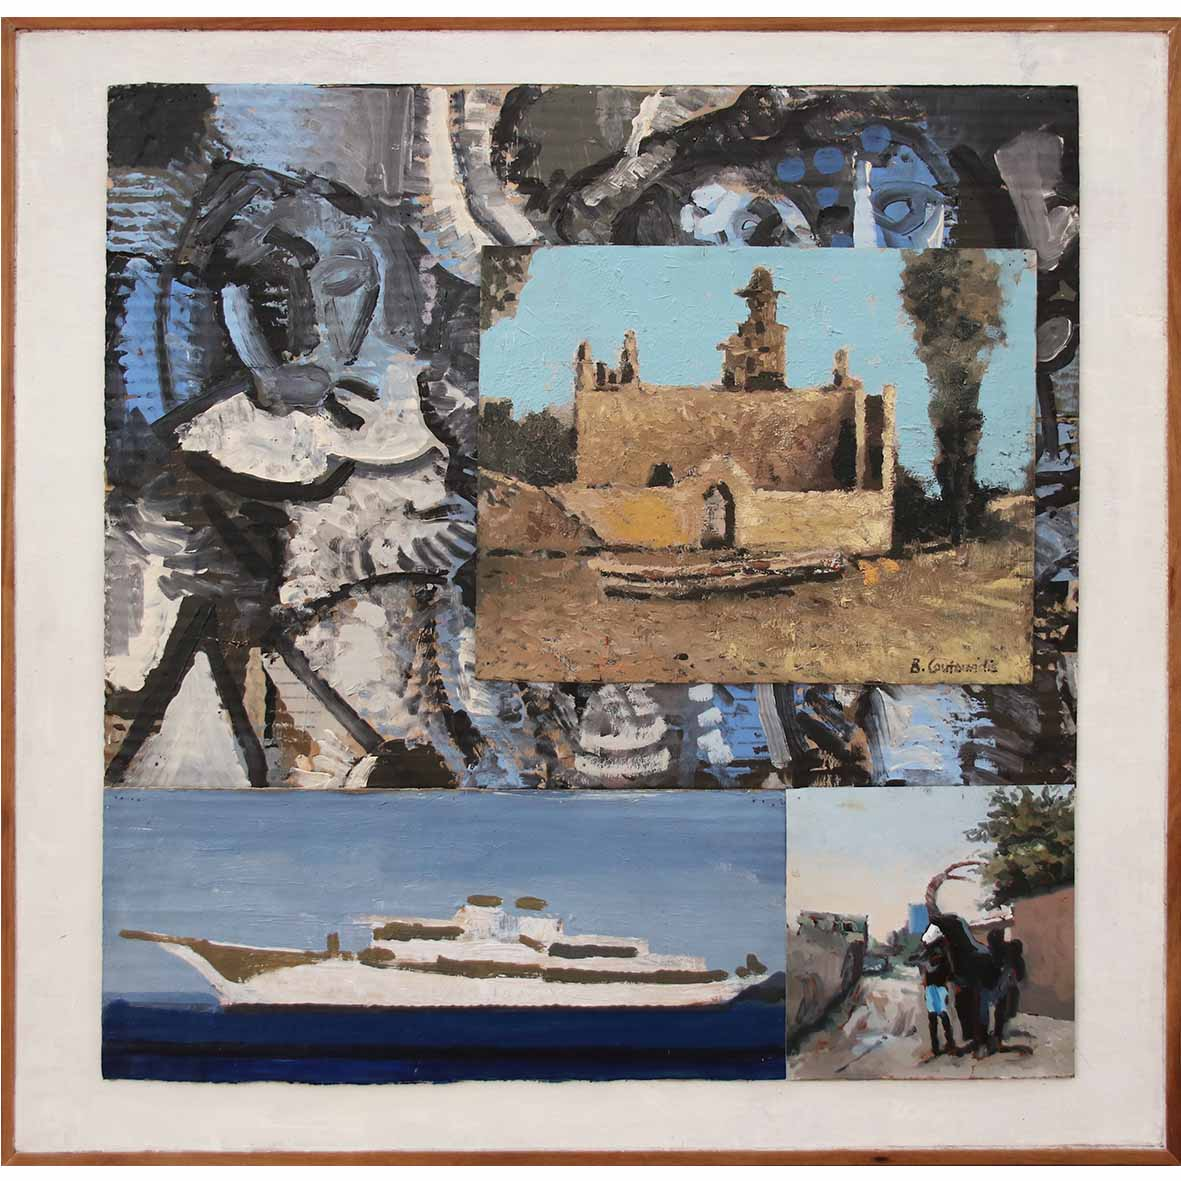 Ben Coutouvidis Picasso in Africa 2019 mixed media 62 x 62 cm